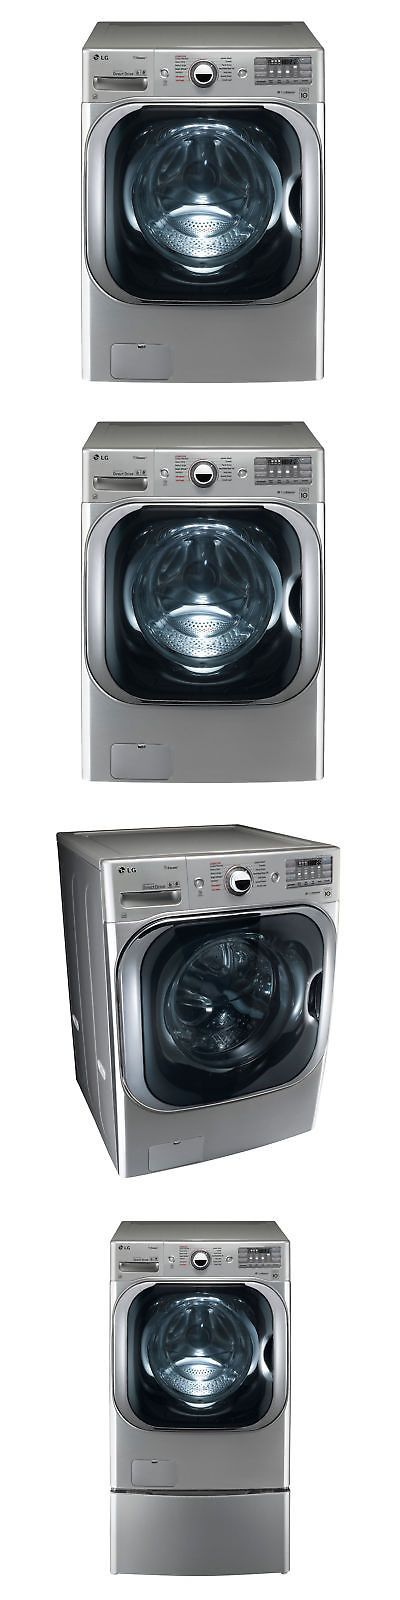 Washer Dryer Combinations And Sets 71257 Lg Wm8100hva 5 2 Cu Ft Mega Cap Front Loading Washing Machine Combination Washer Dryer Washer Dryer Combo